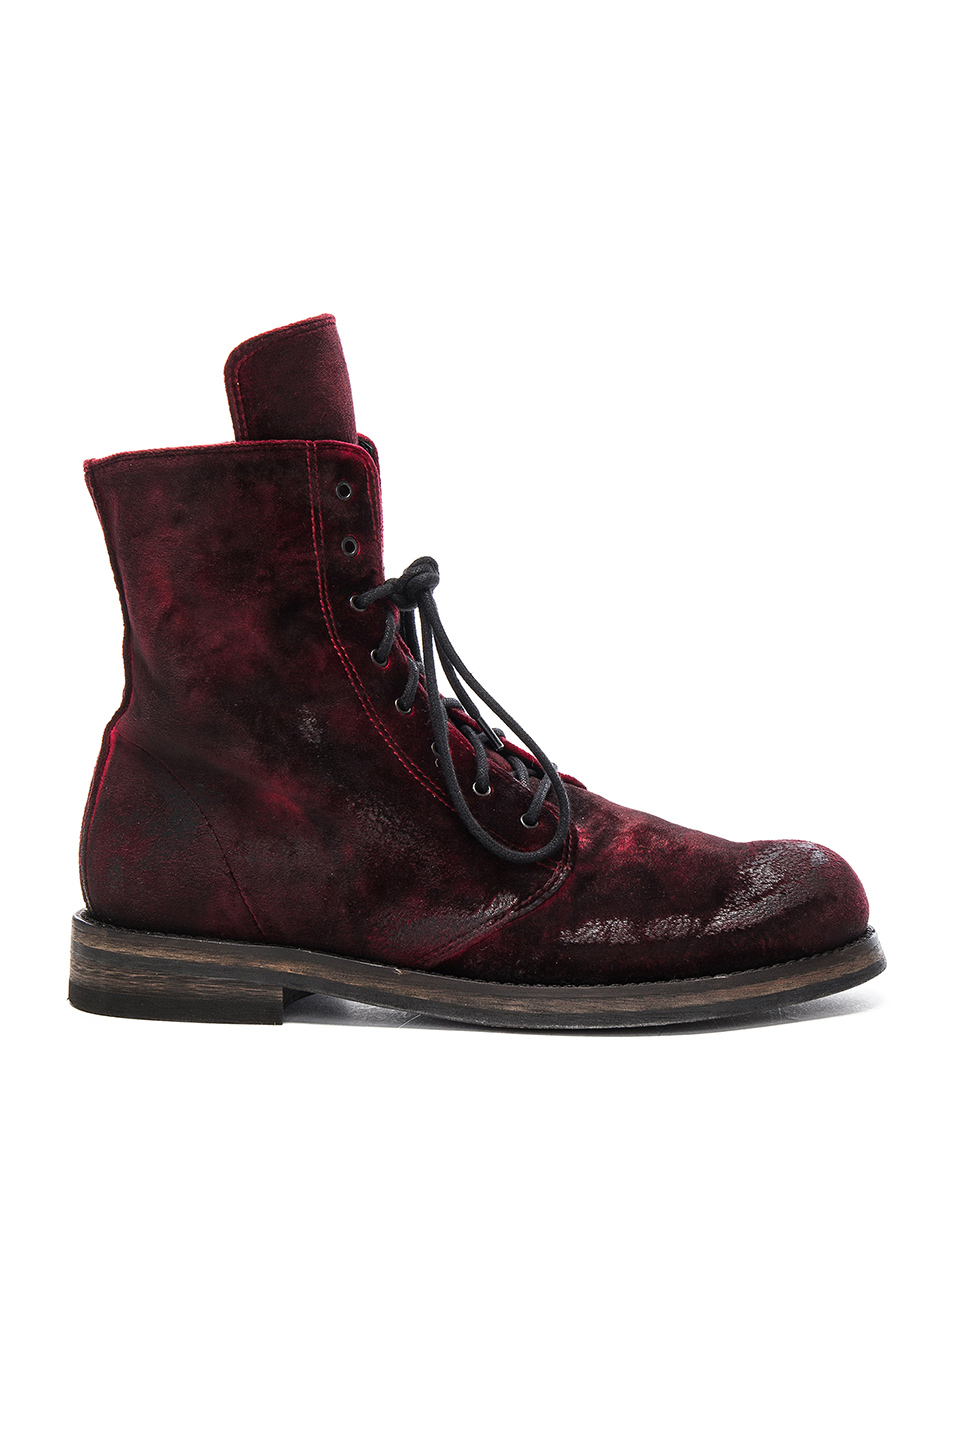 Ann Demeulemeester Boot in Red